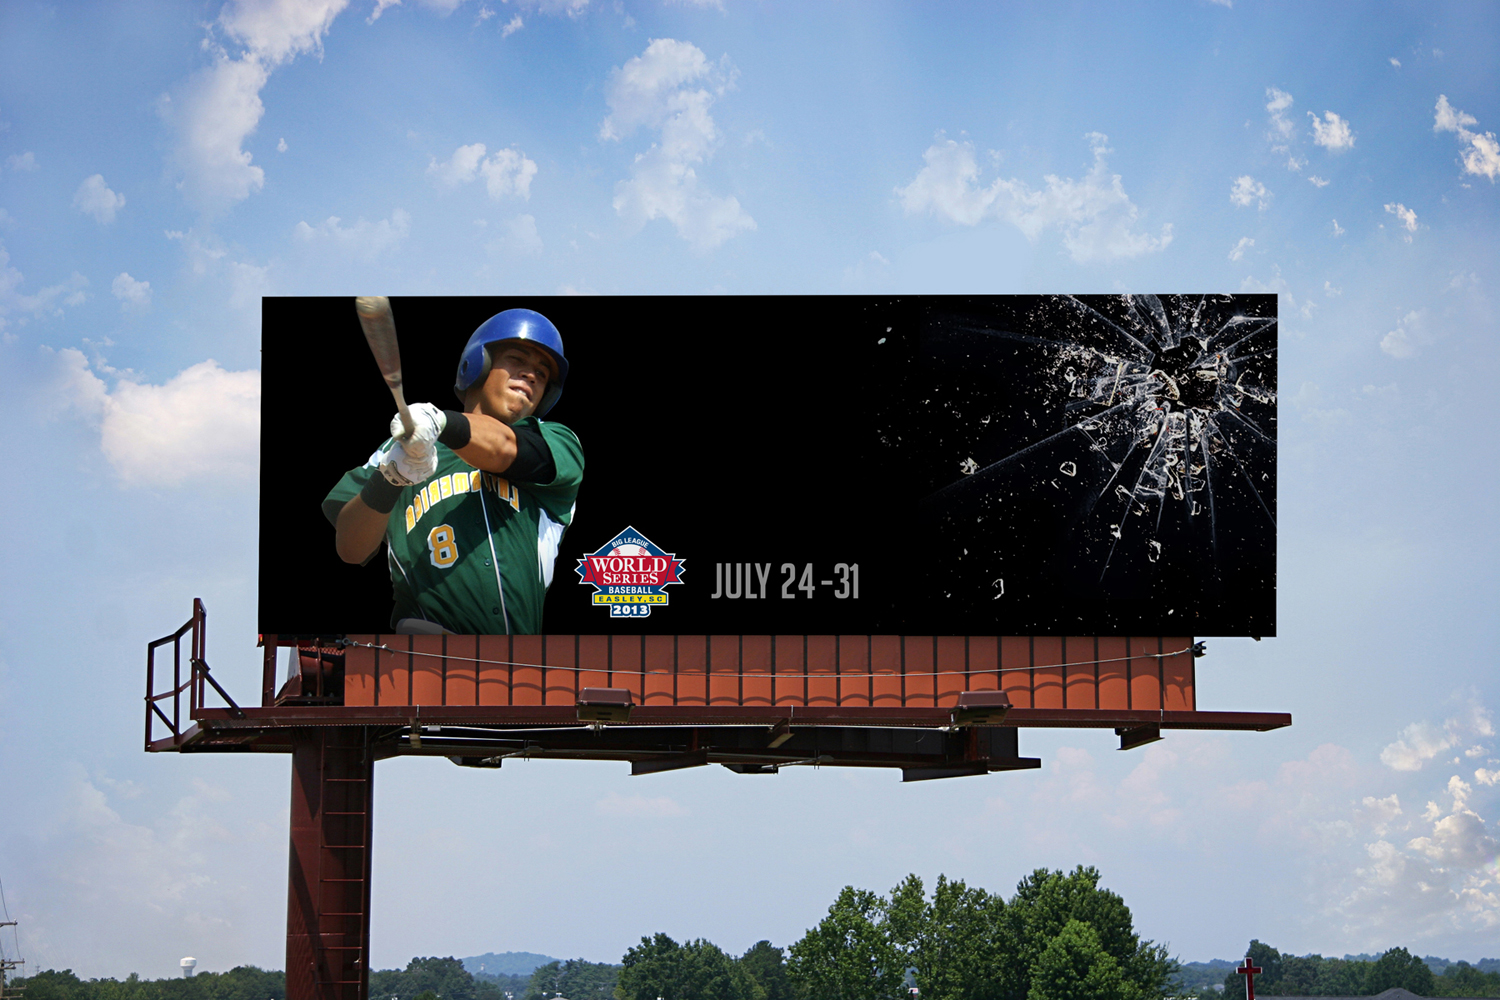 Big-League-World-Series-outdoor-advertising-copywriting-work-by-Lochness-Marketing-greenville-glass